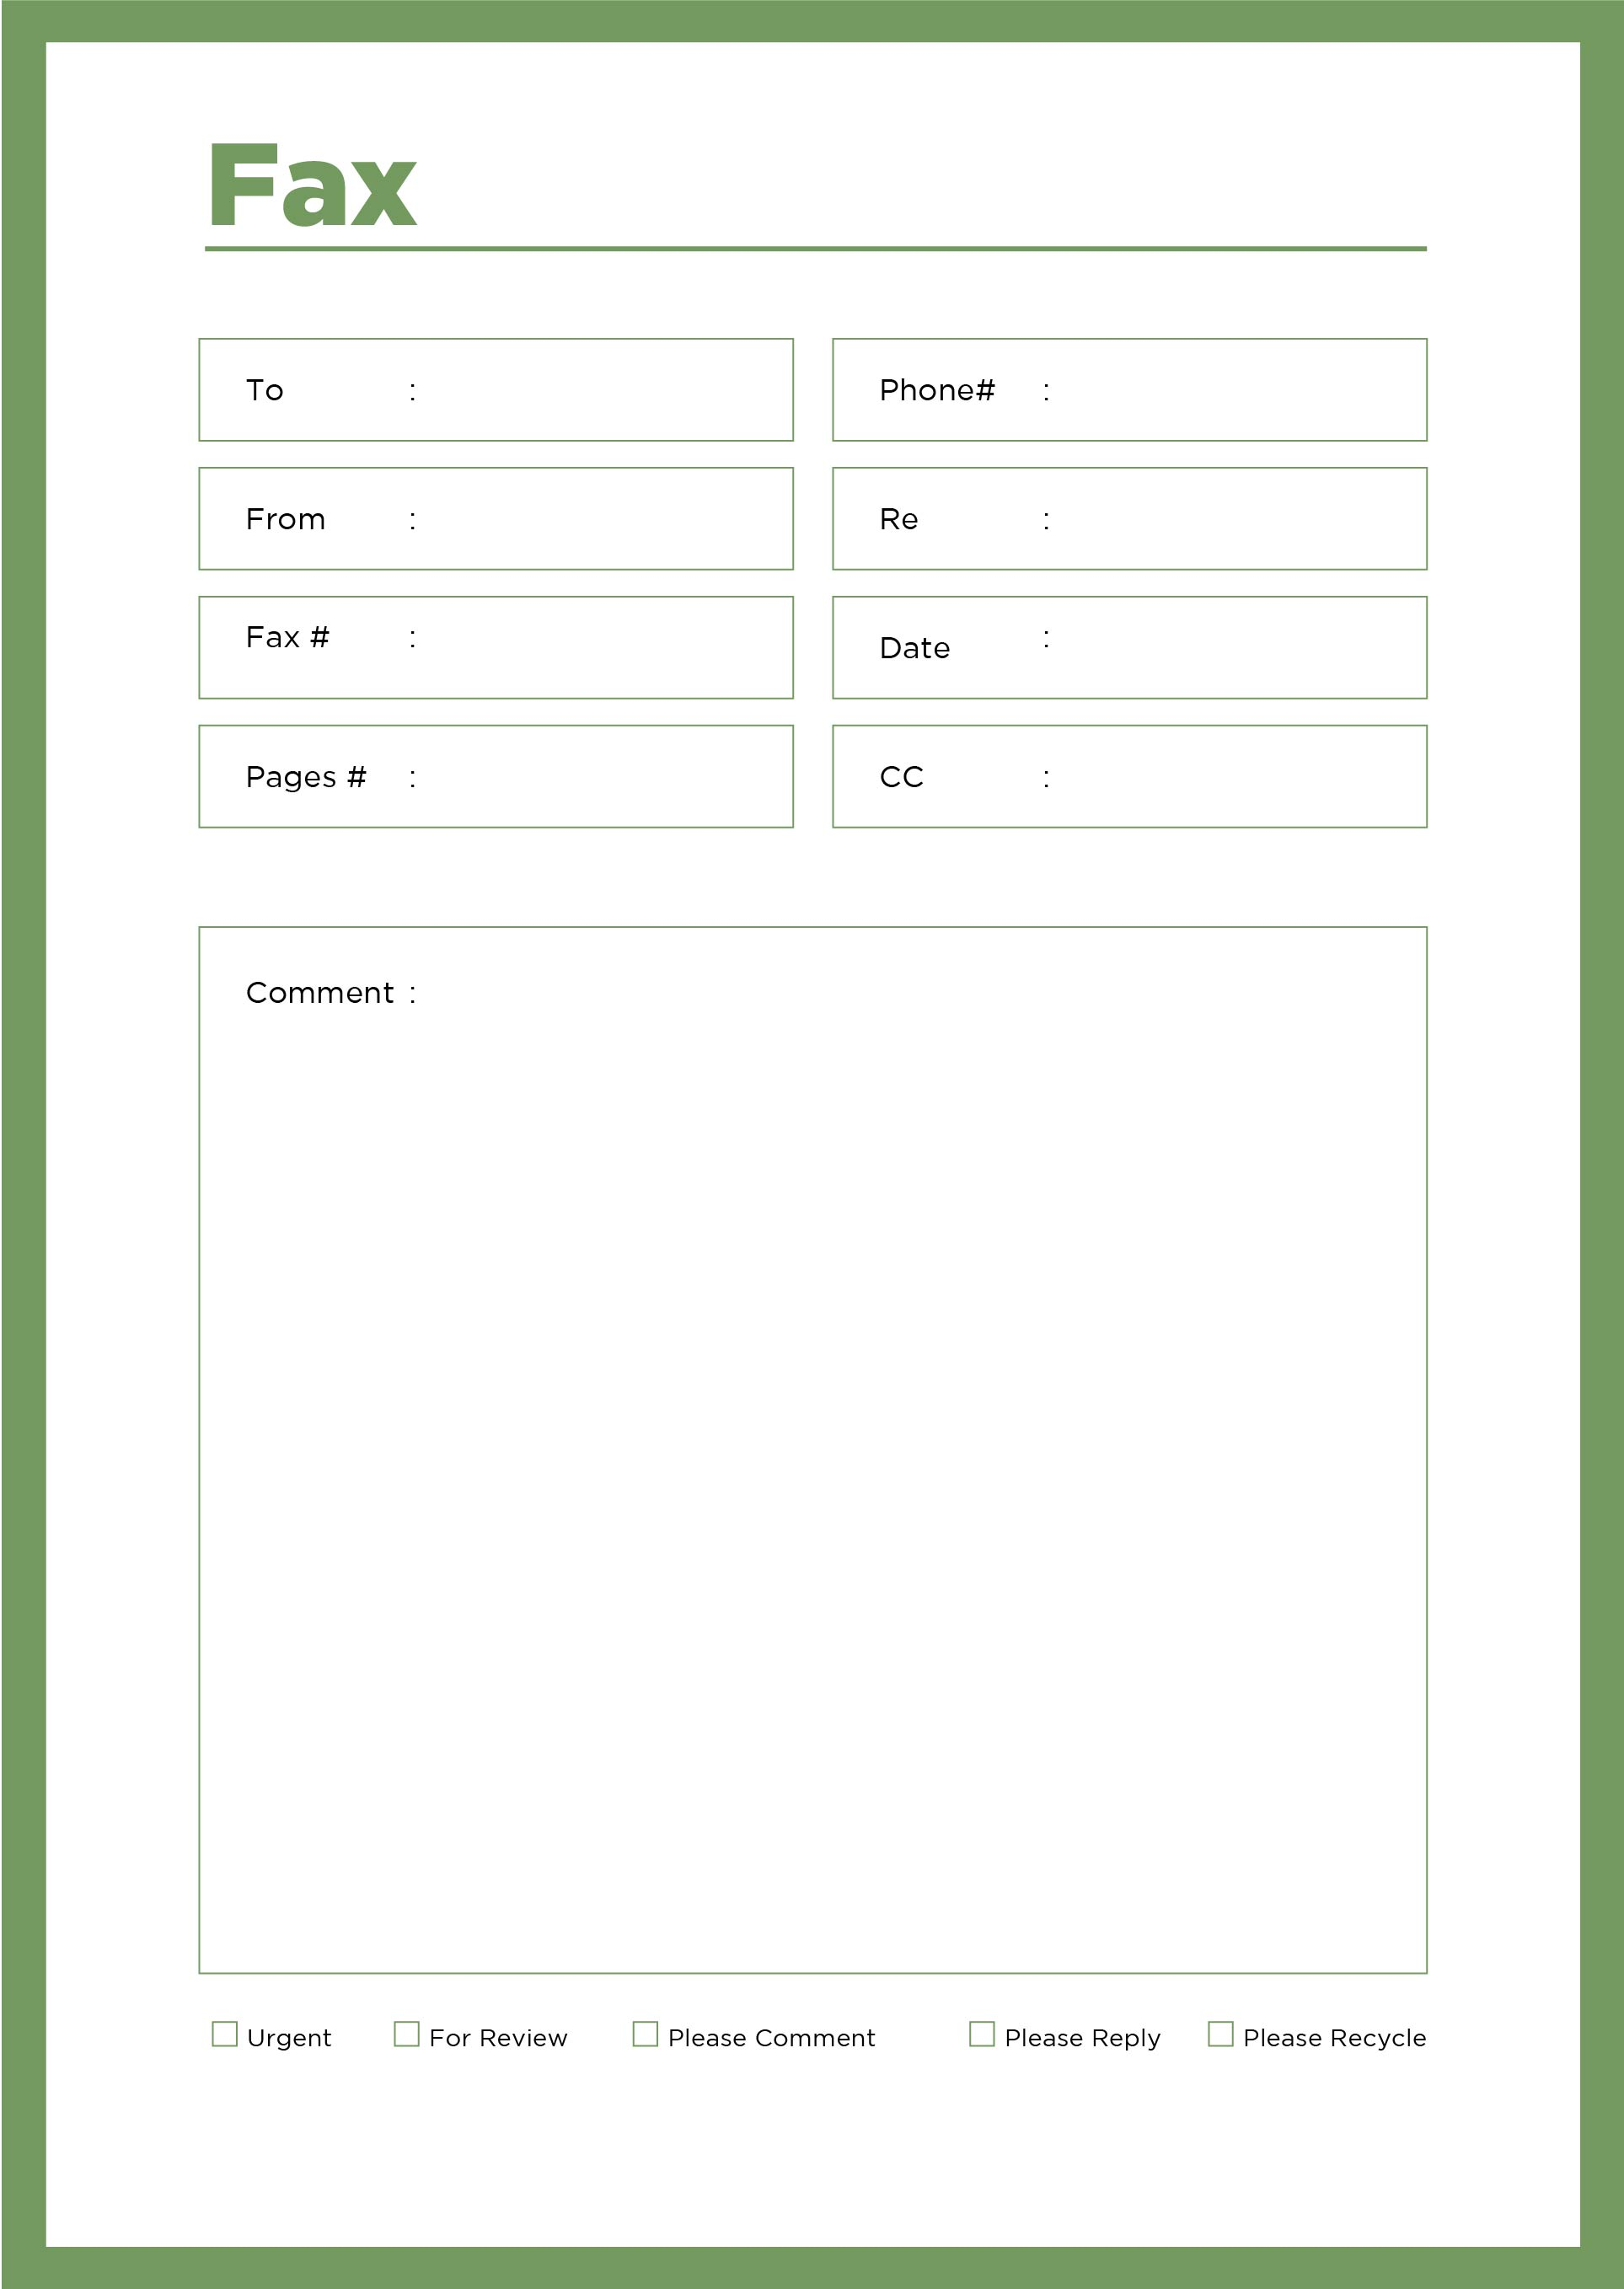 fax cover sheet template microsoft Template – How to Format a Fax